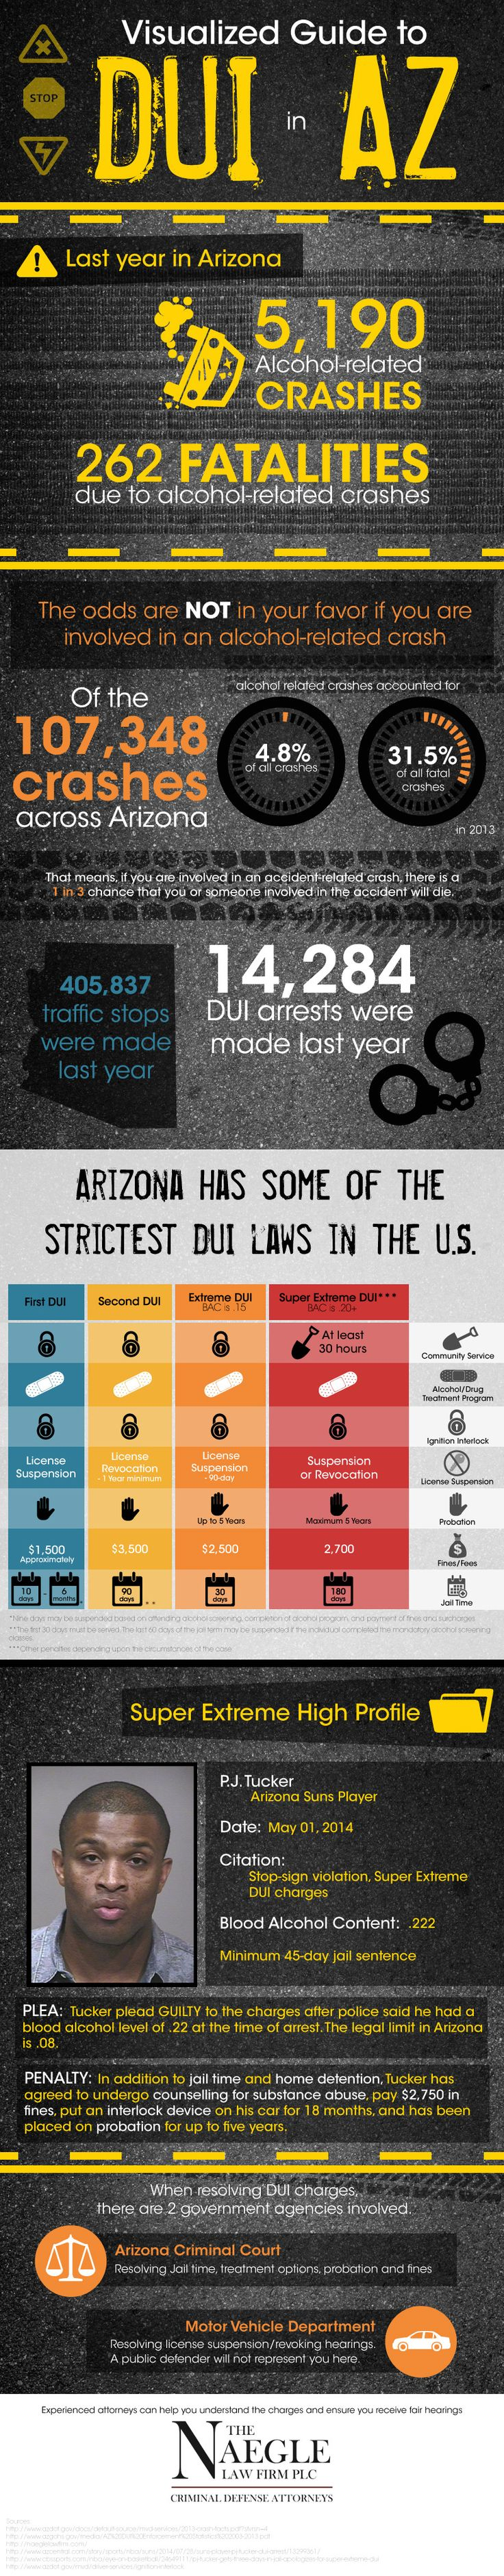 Visualized Guide to DUI in Arizona